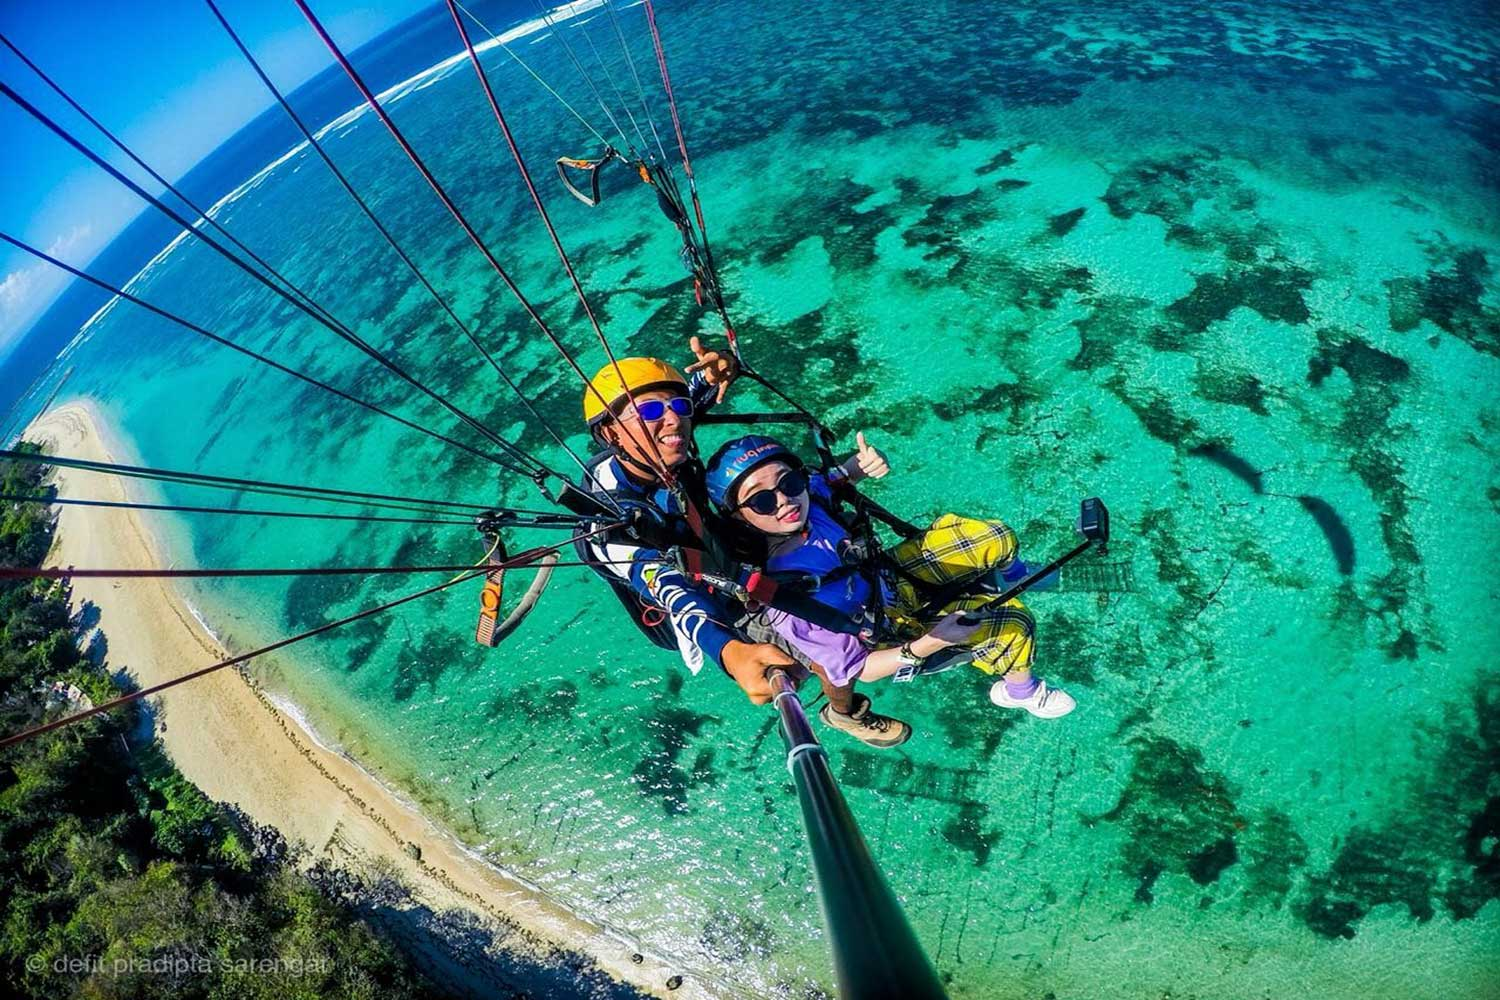 bali paragliding picture with gopro